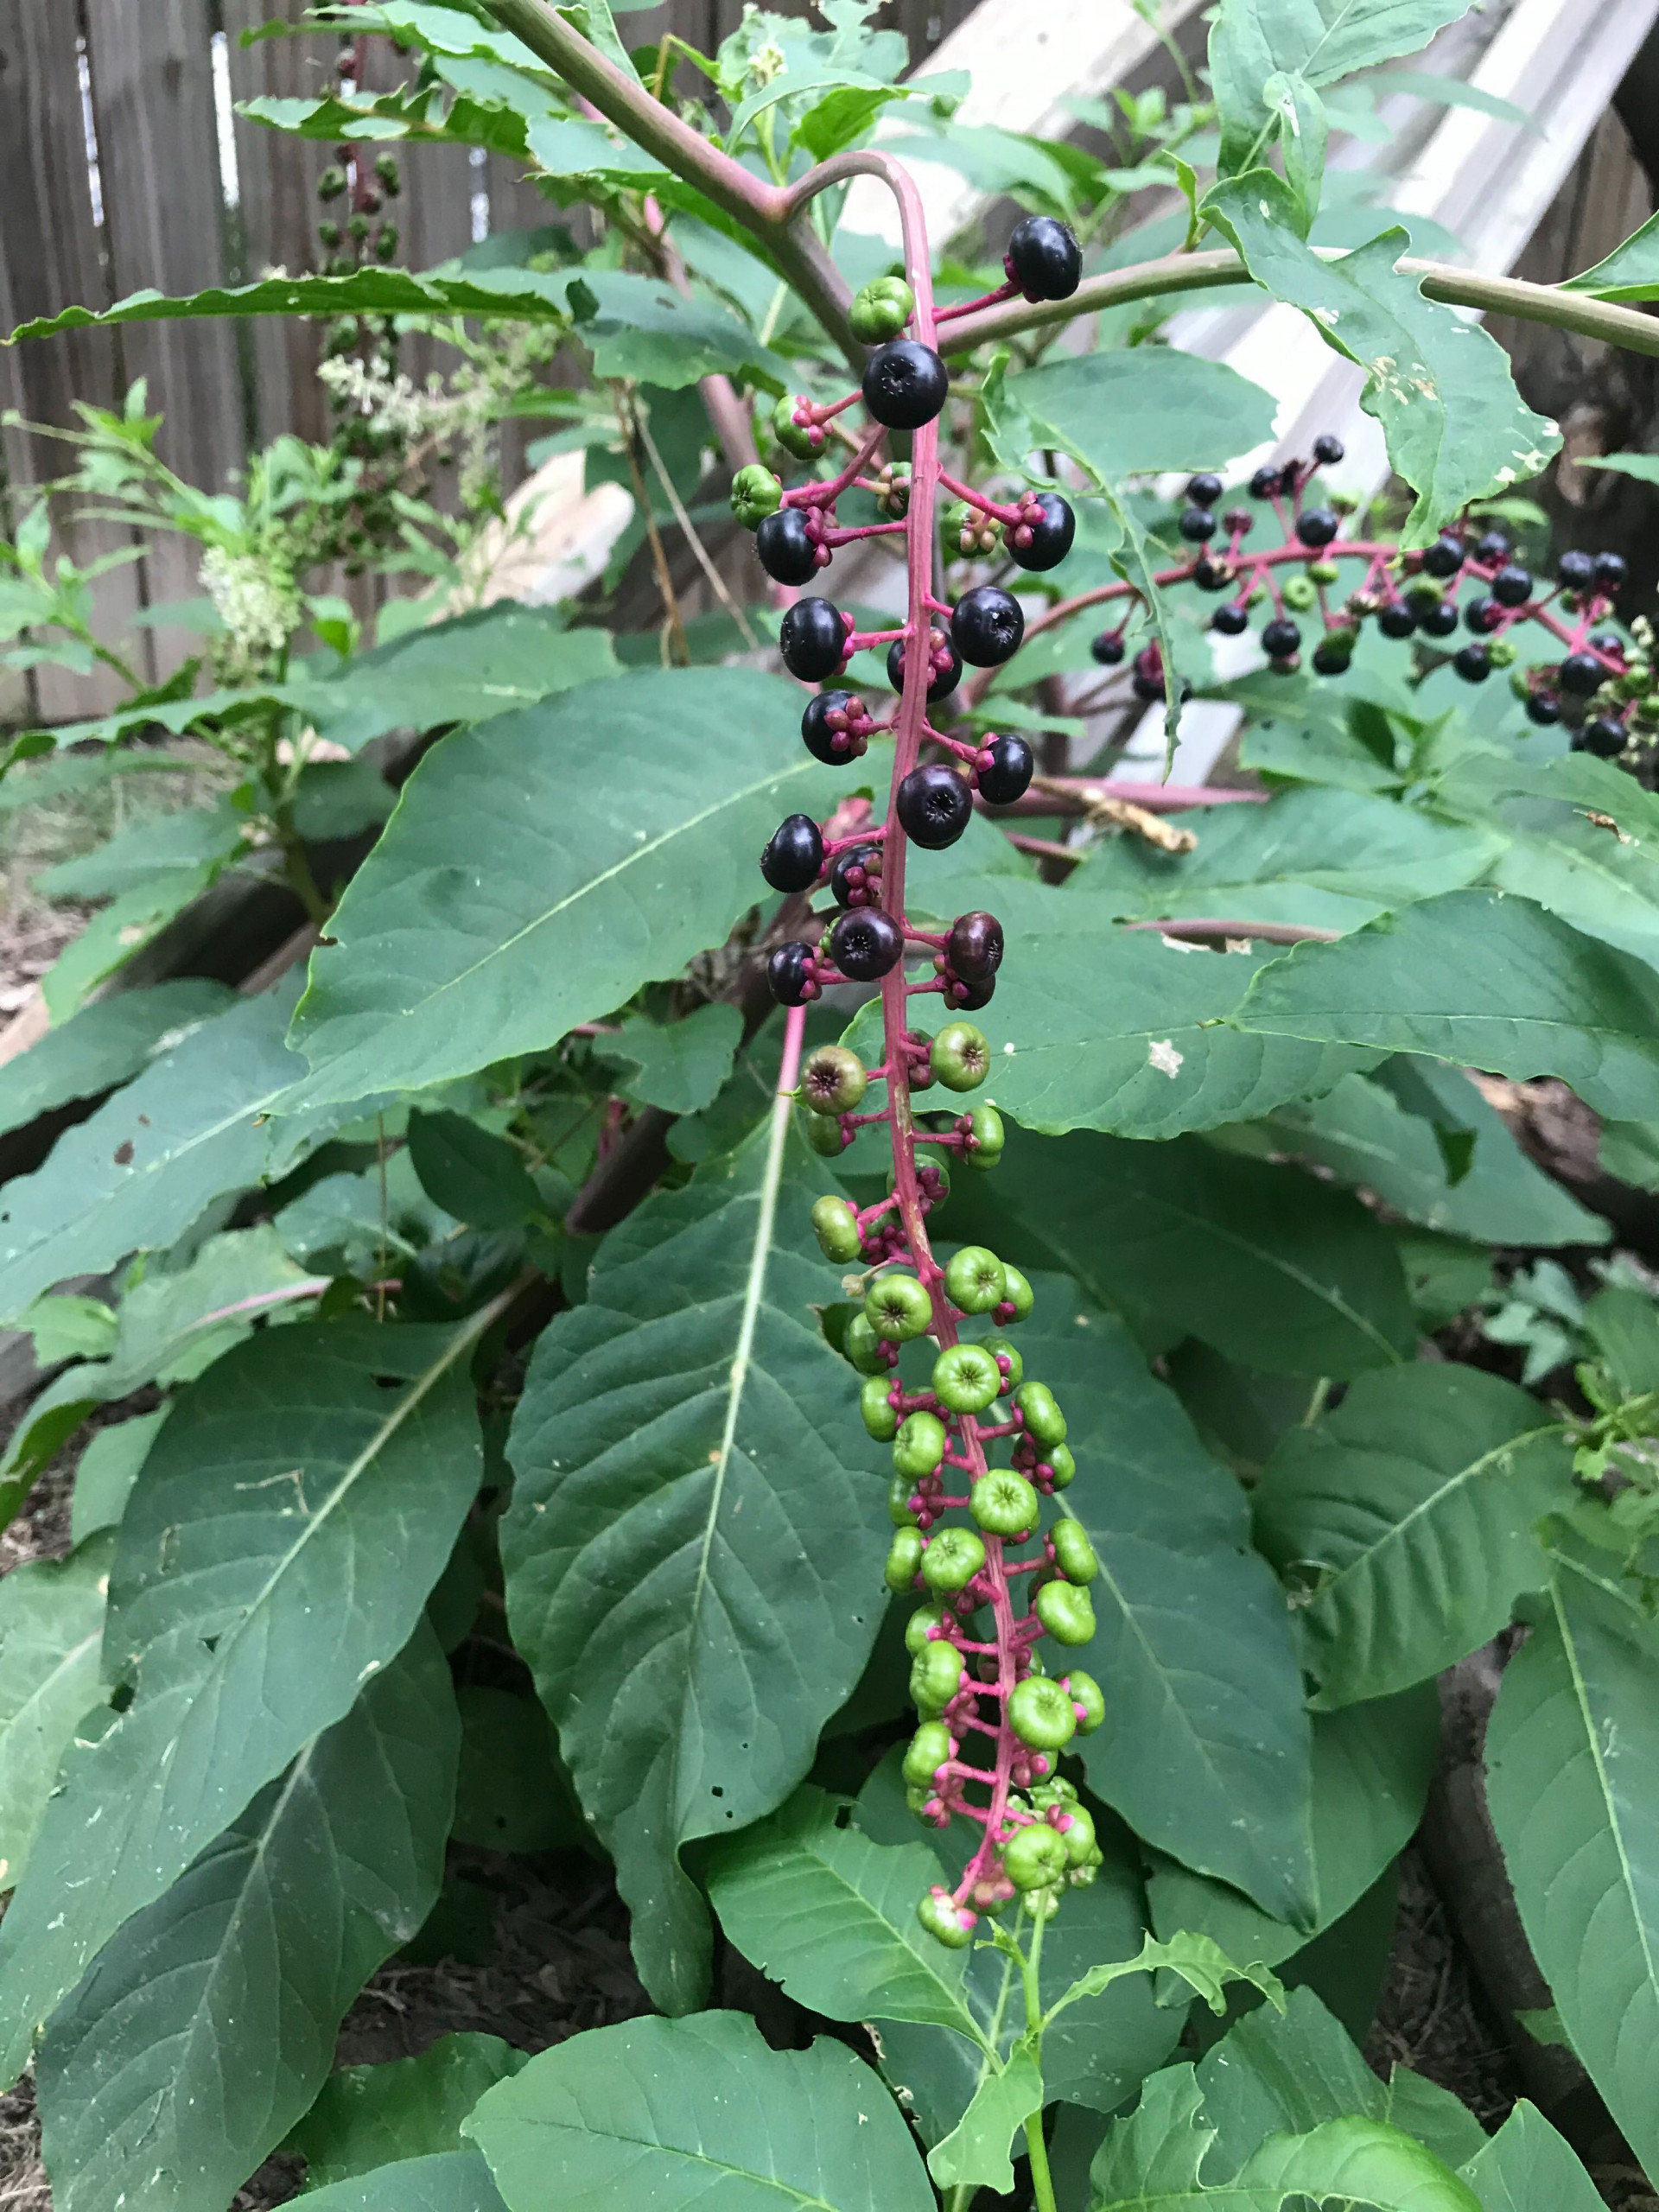 Pokeweed fruit cluster with ripe purple berries and green inmature fruits.